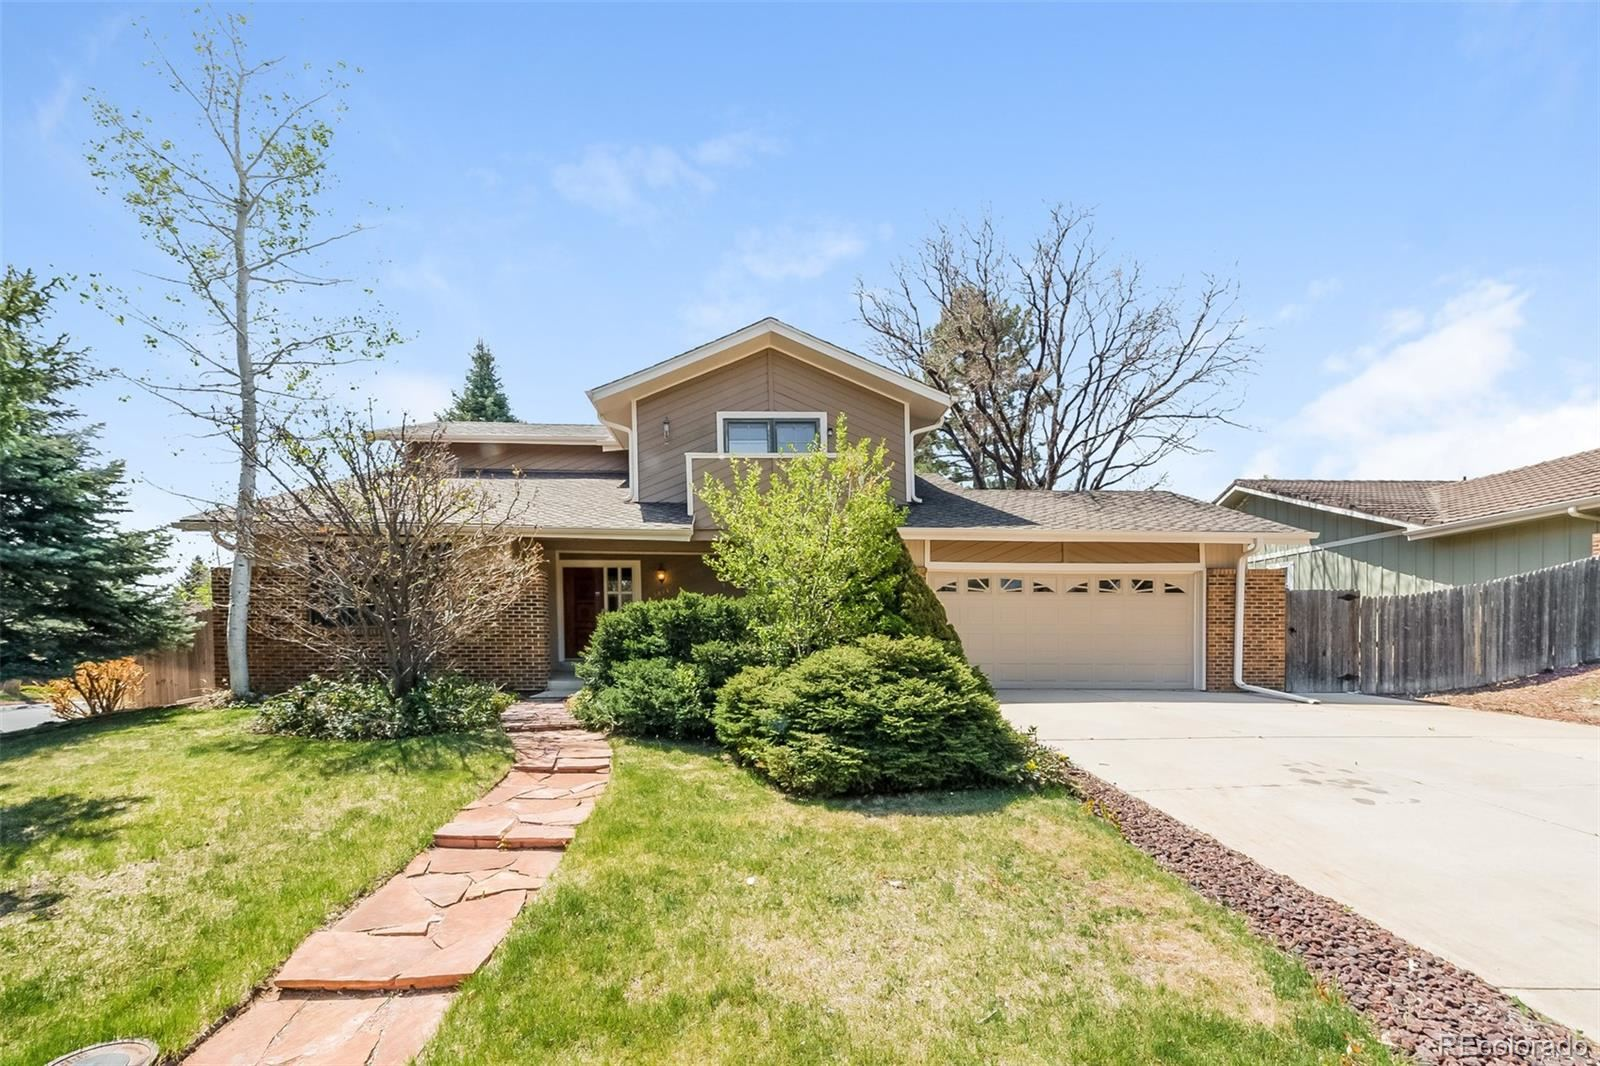 5843 S Jamaica Way, Englewood, CO 80111 - #: 7561058